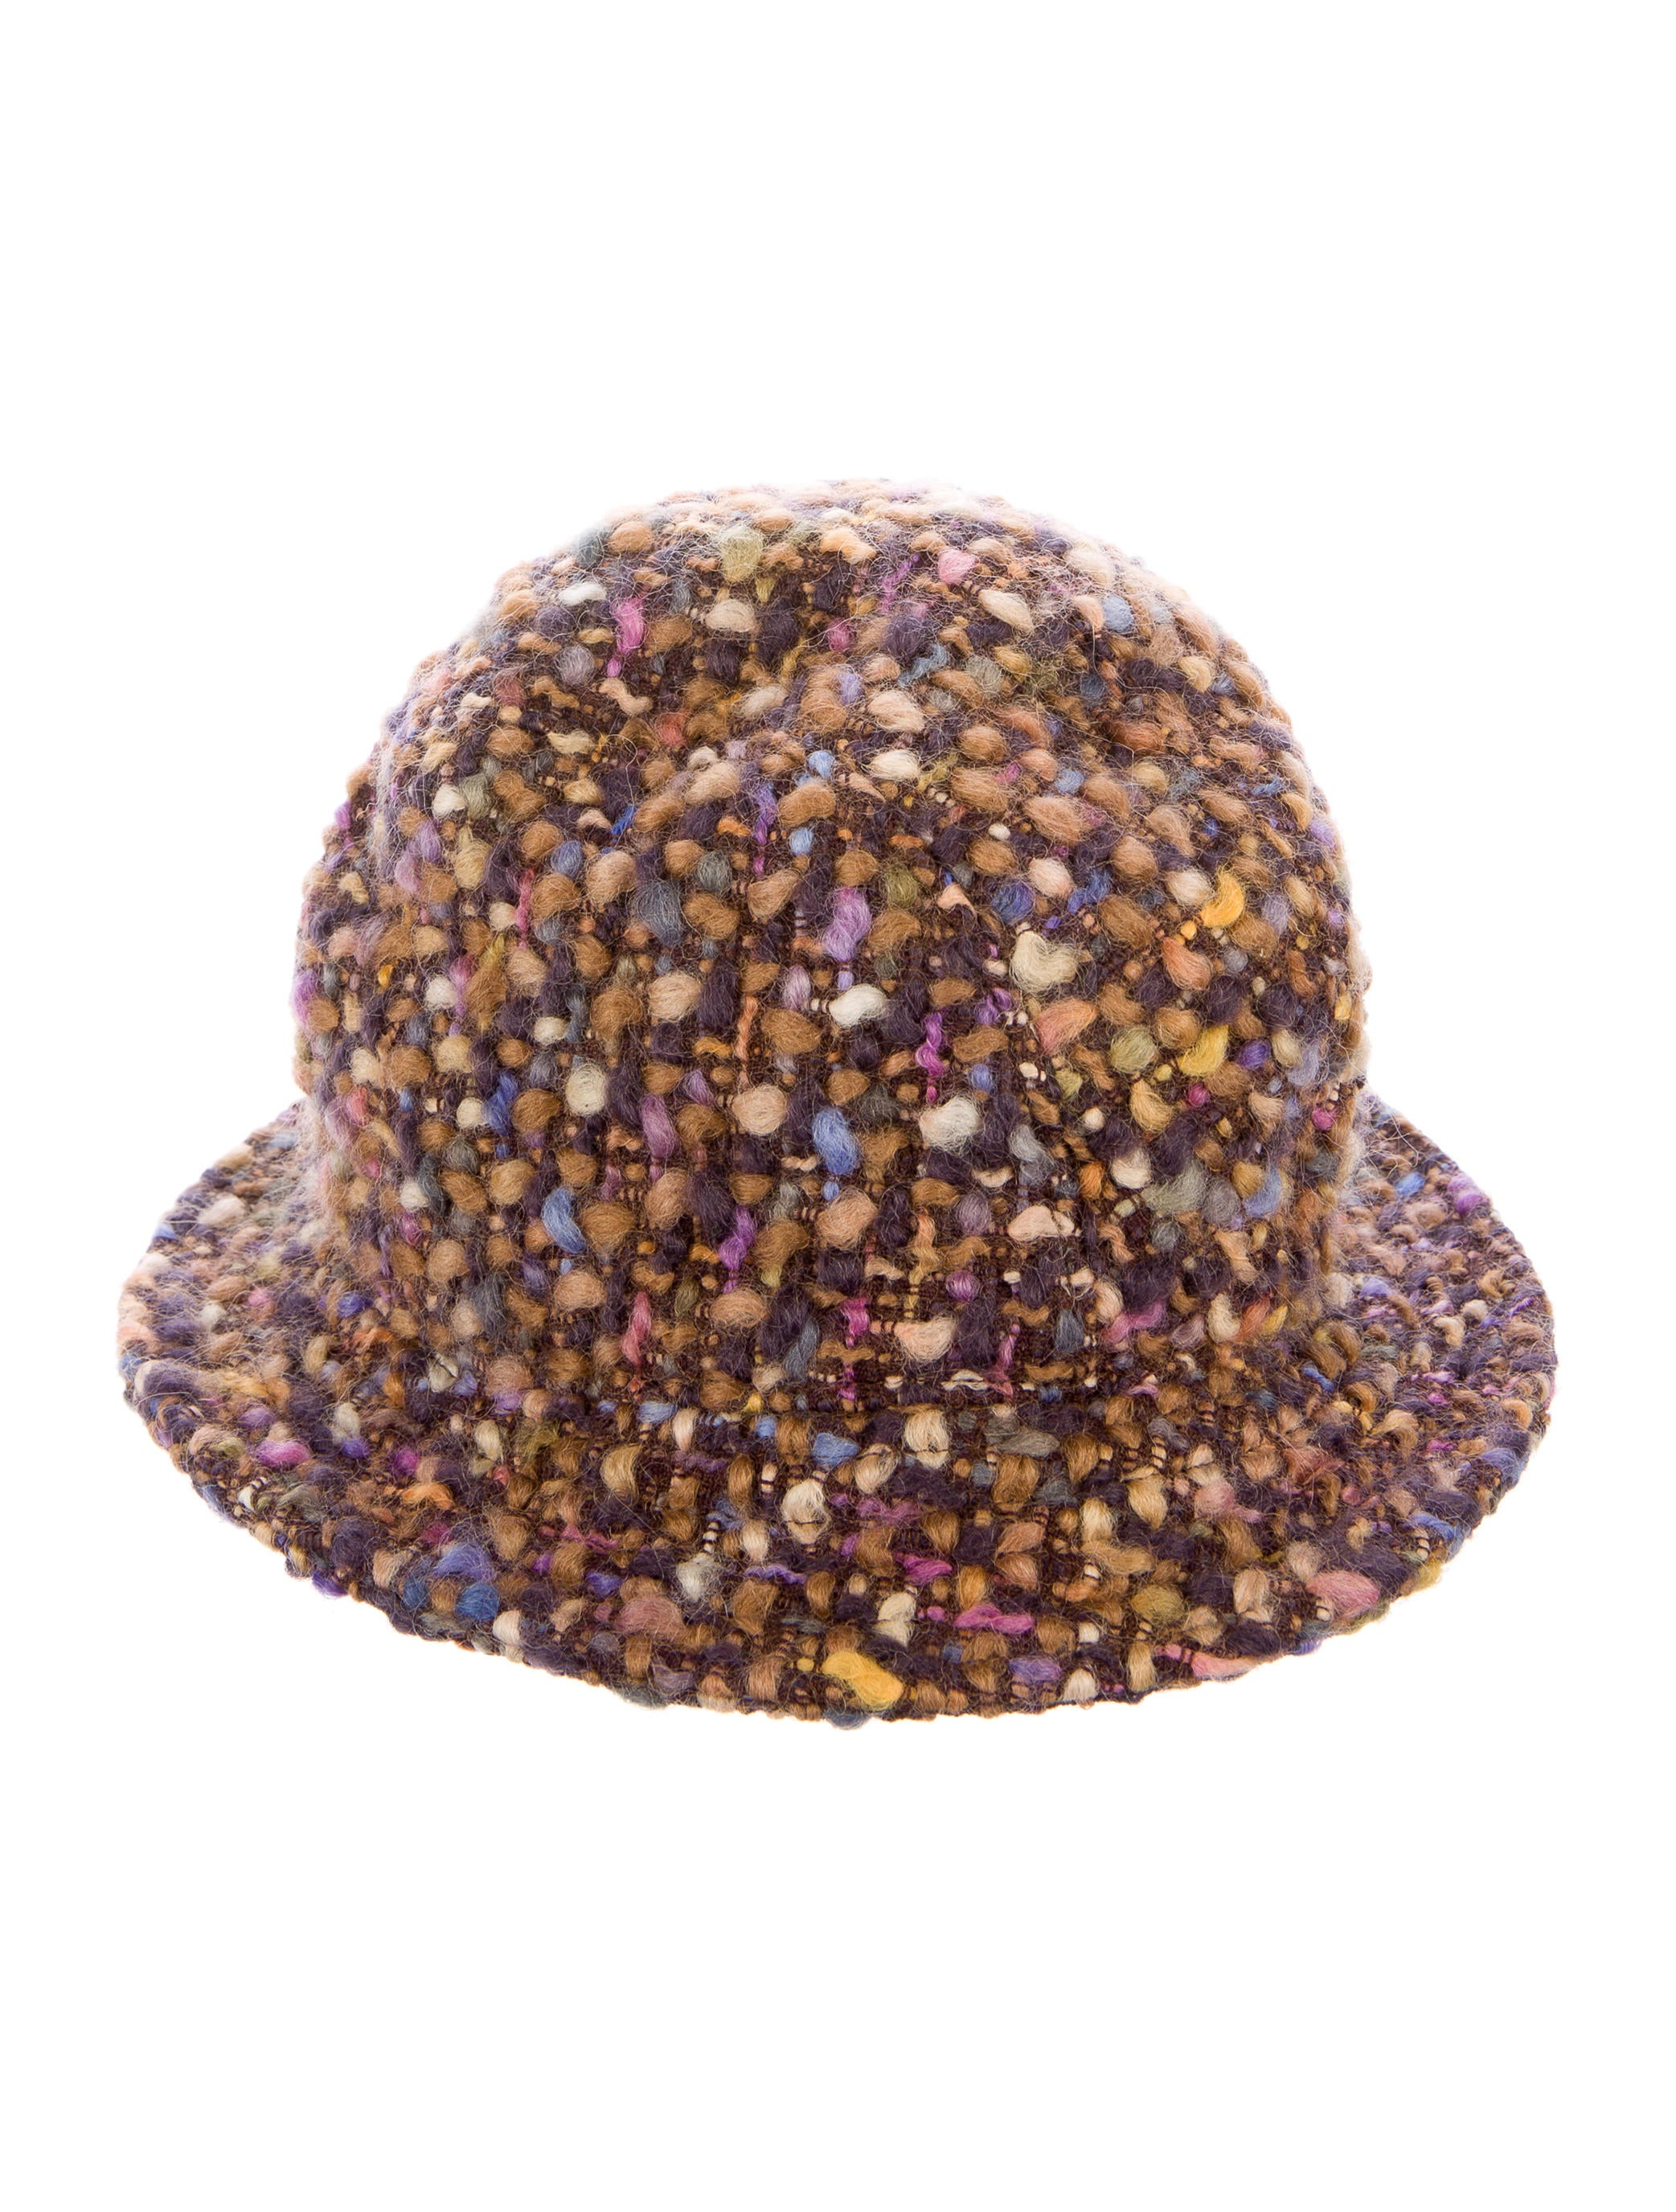 dd801a0258bb8 Bogner Wool Bouclé Bucket Hat - Accessories - WB120148